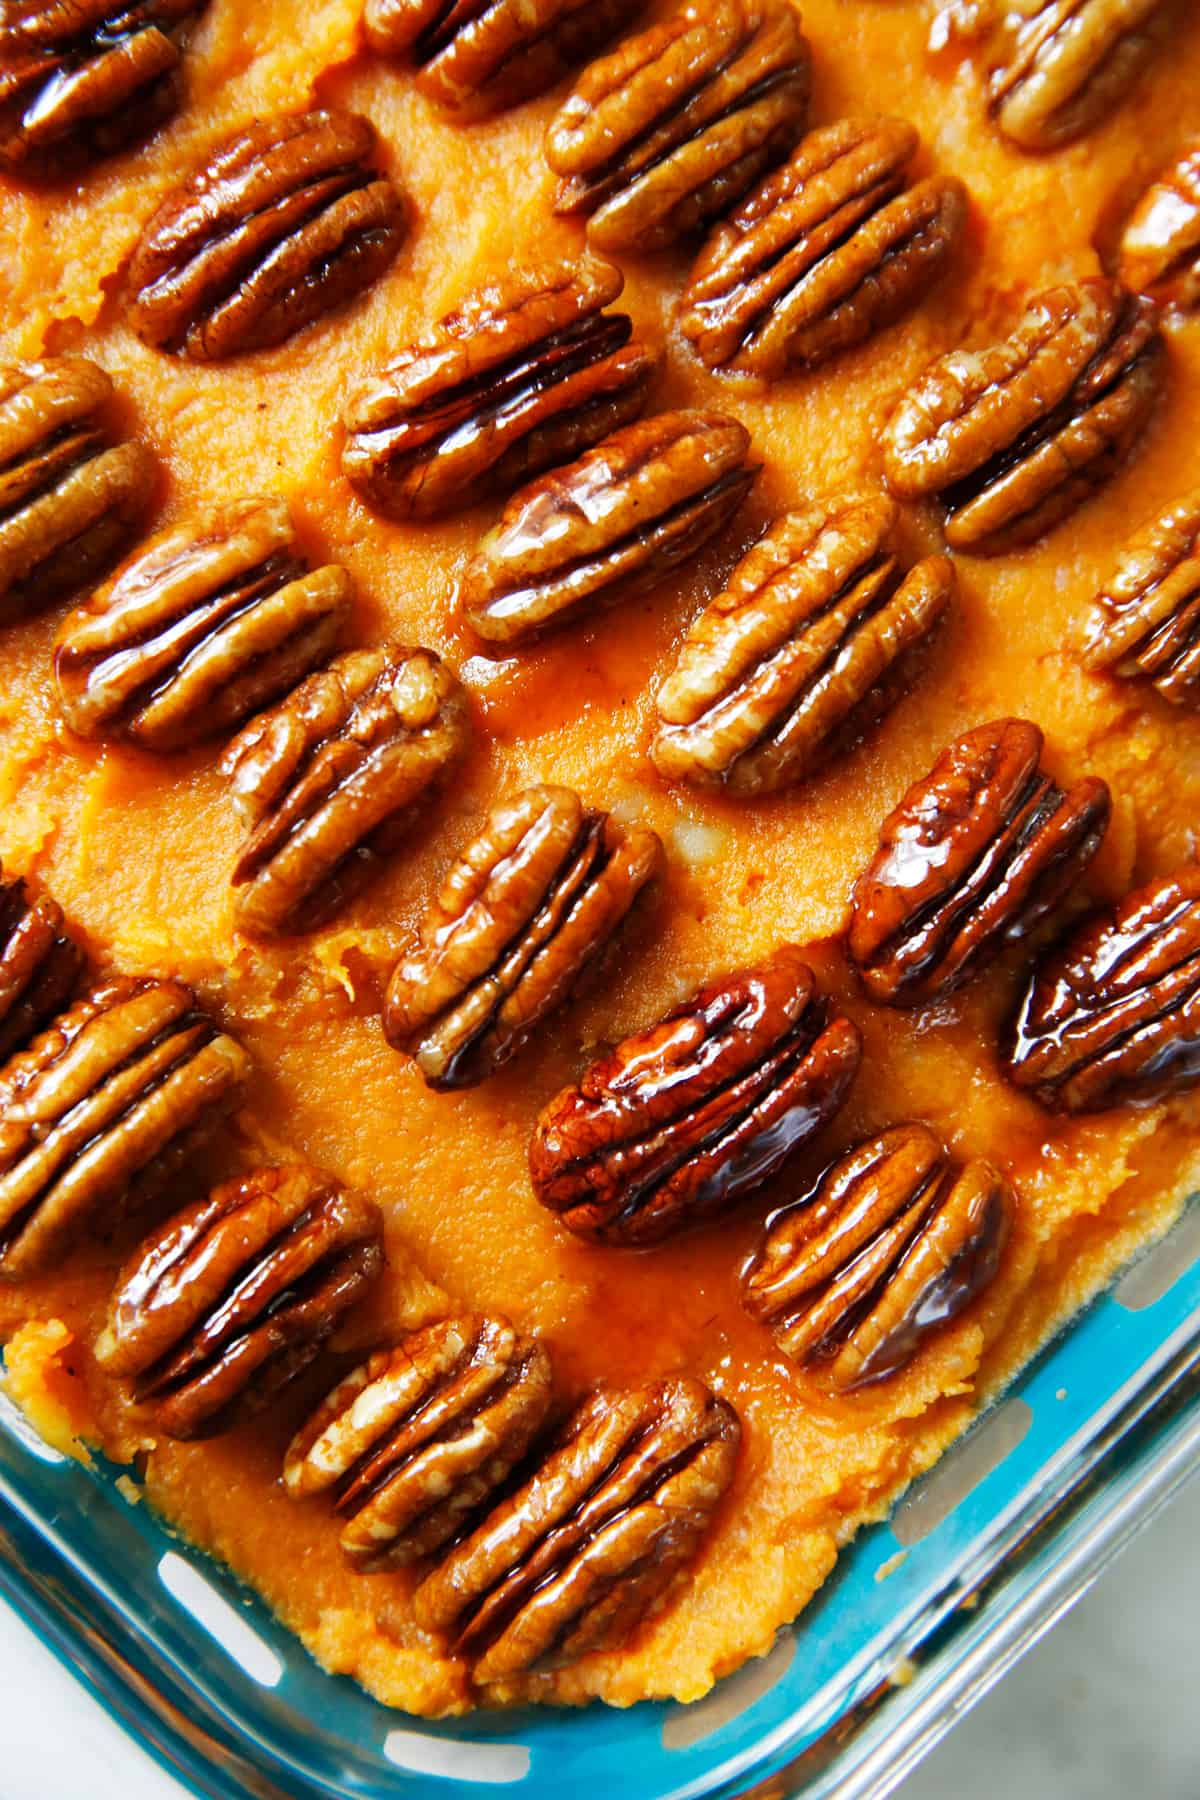 Healthy sweet potato casserole with candied pecans on top